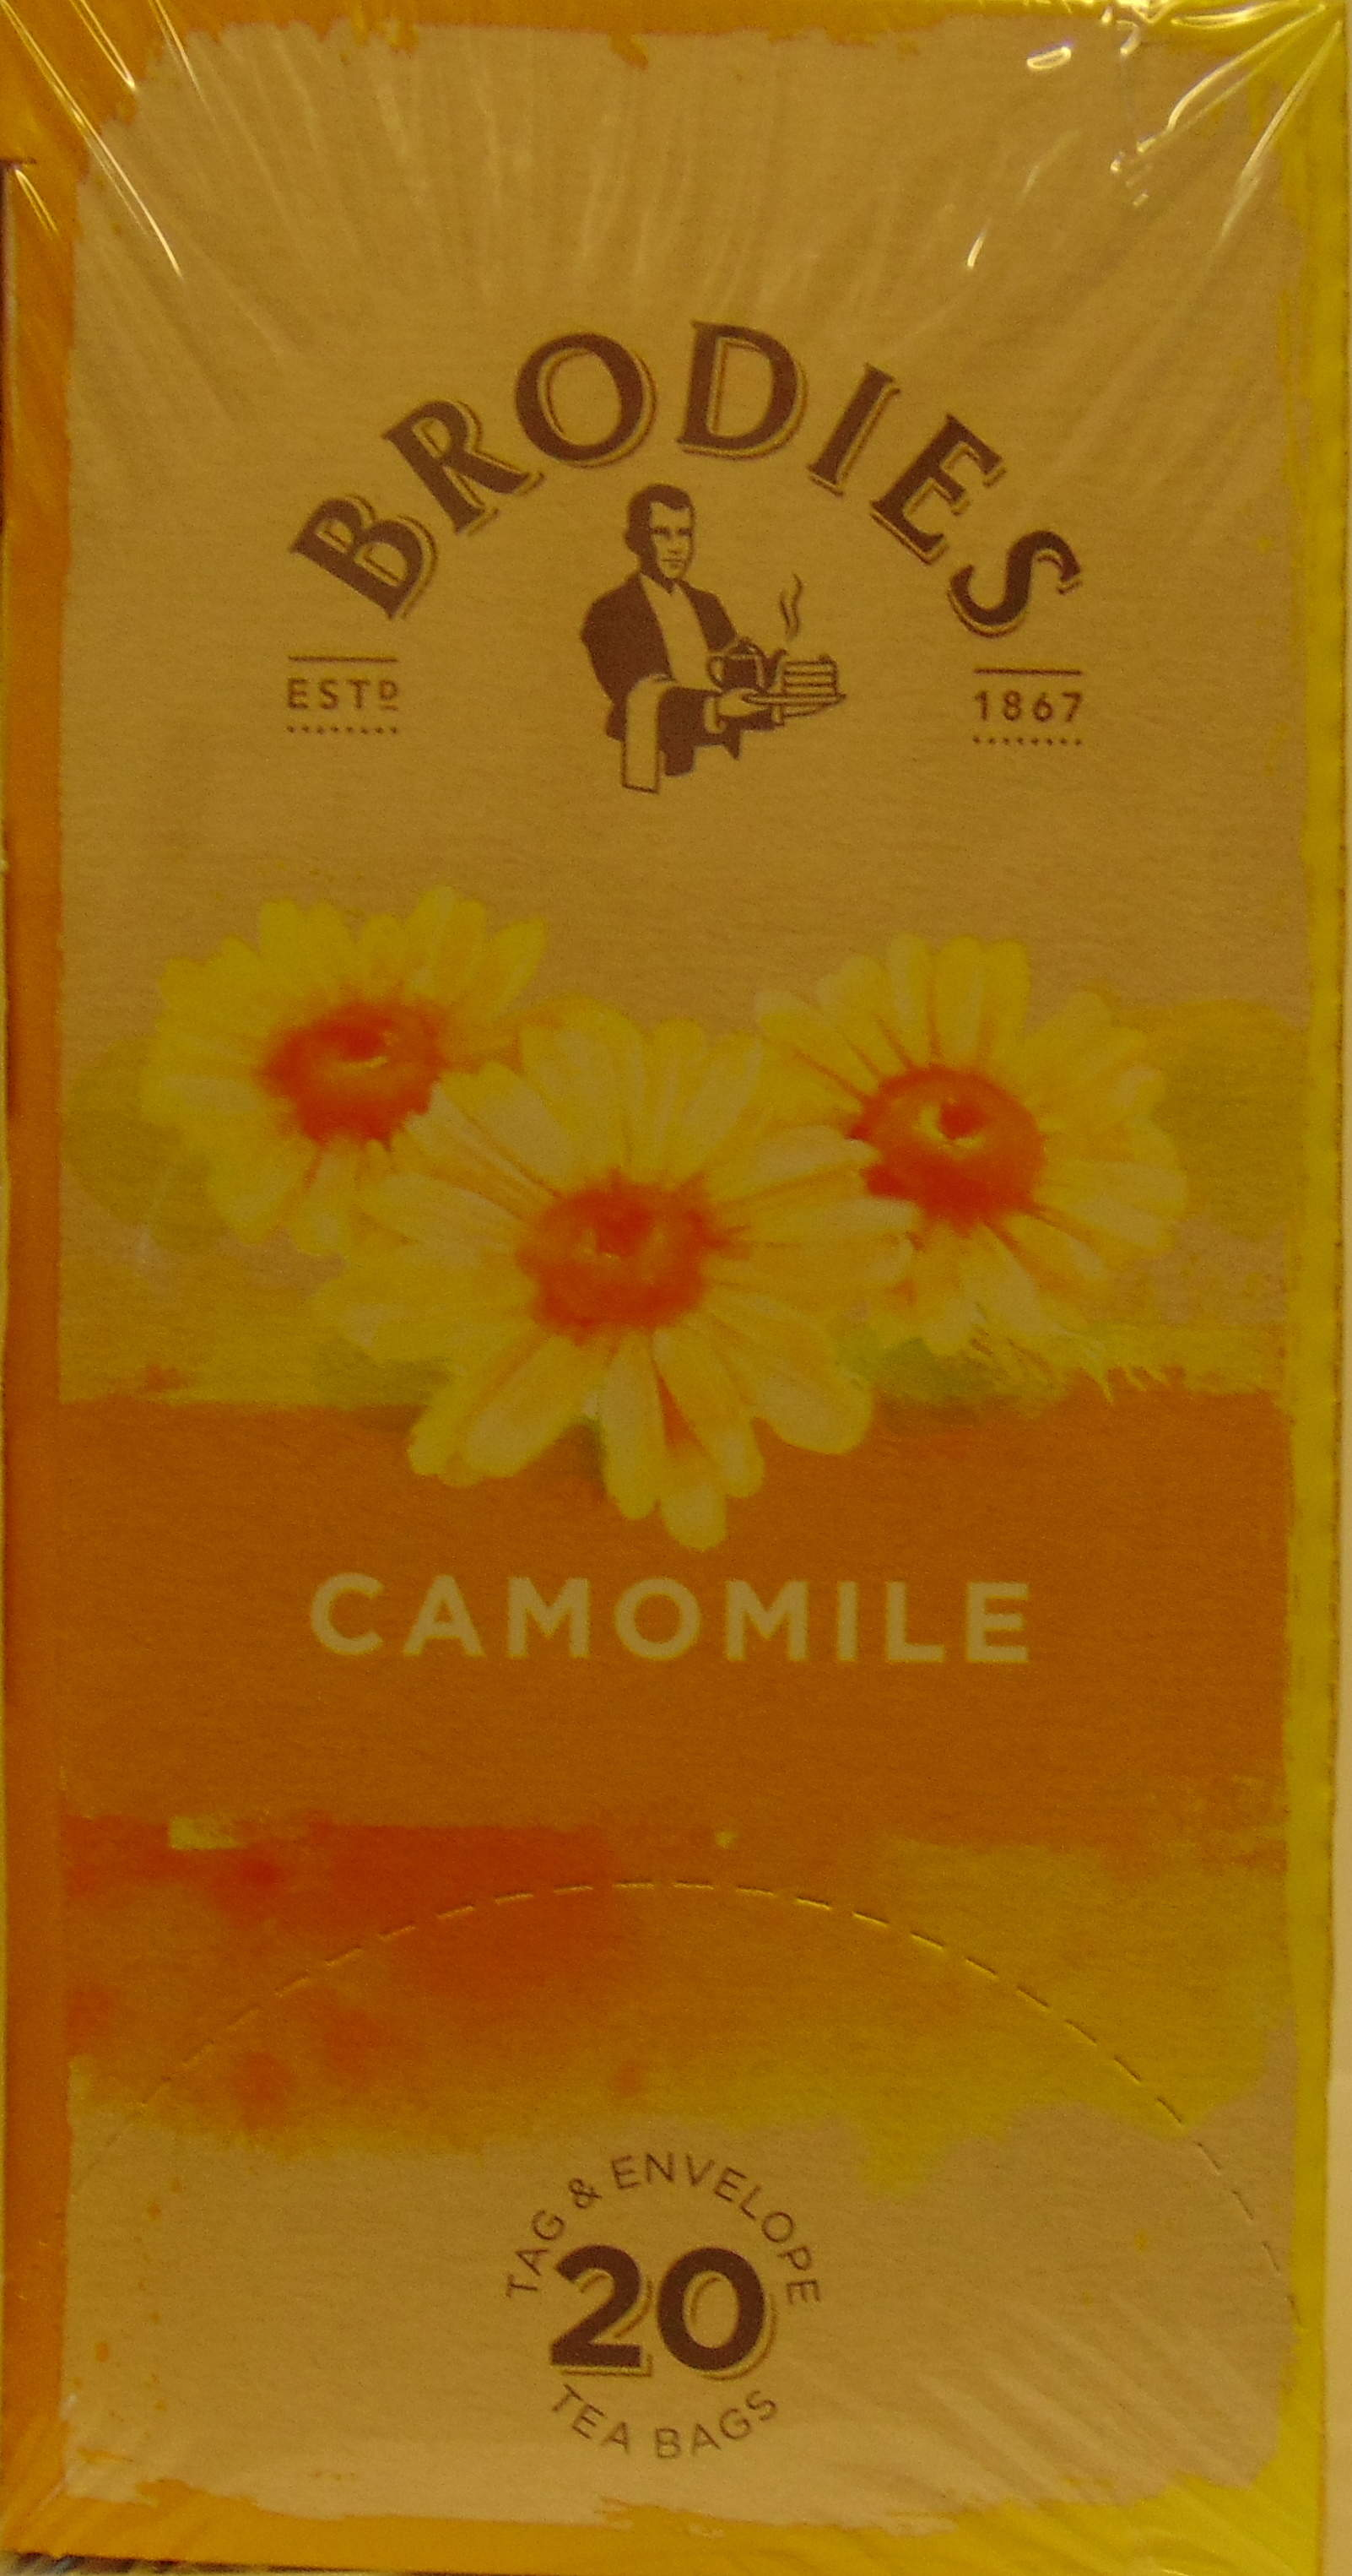 Brodie Melrose Camomile Tea. Tag and Envelope. 86g